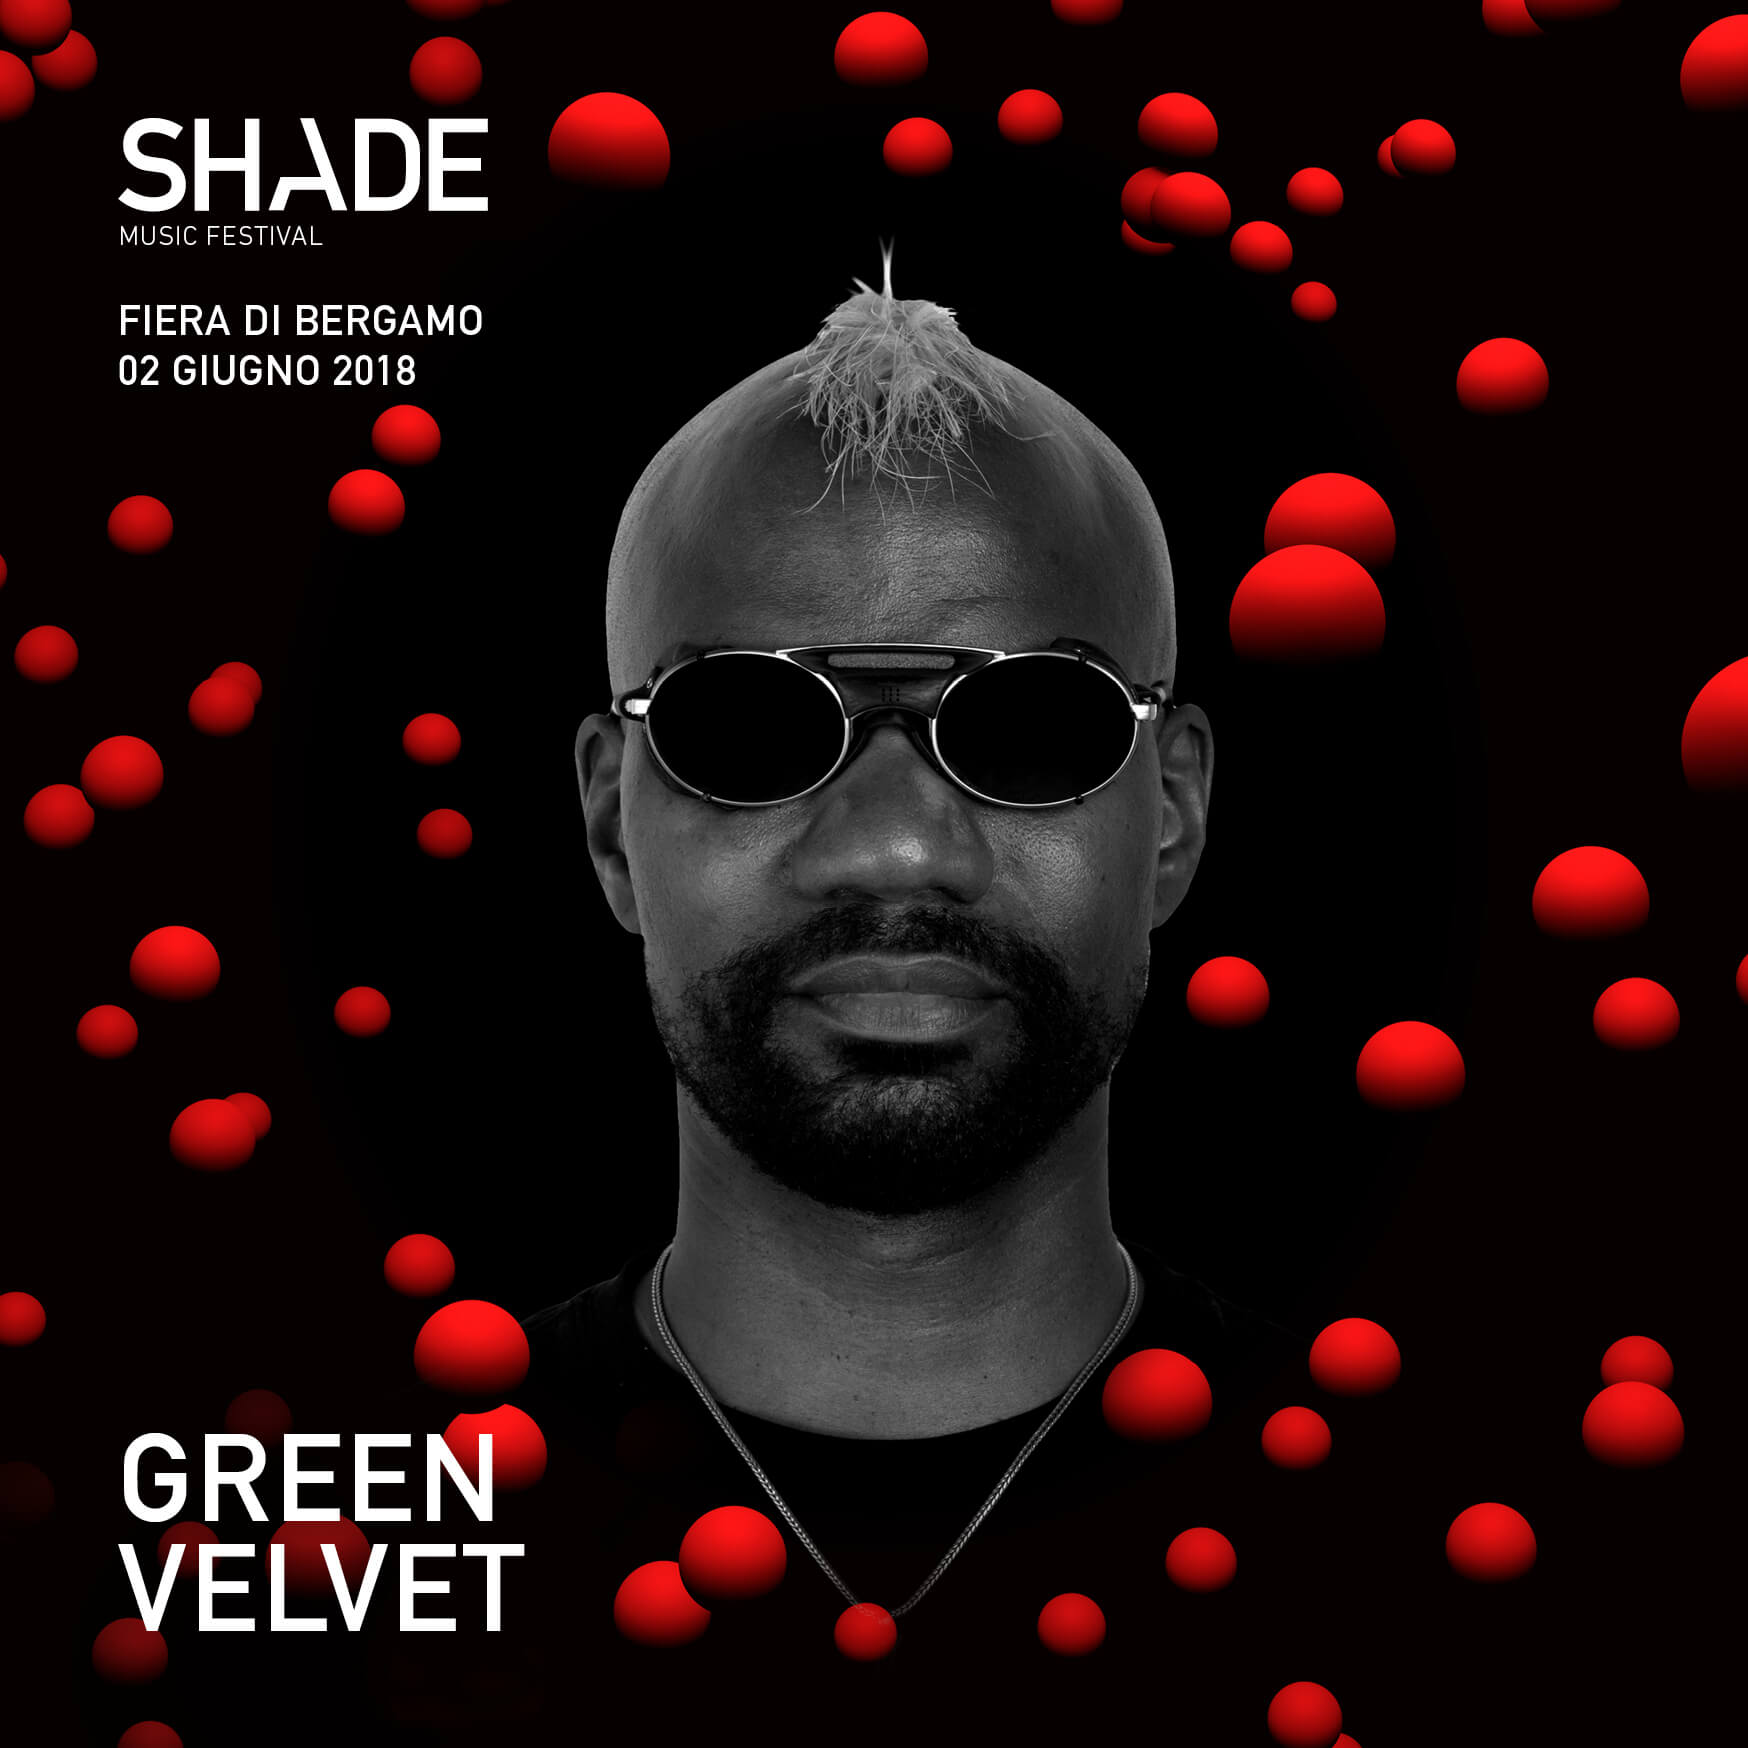 green velvet shade music festival